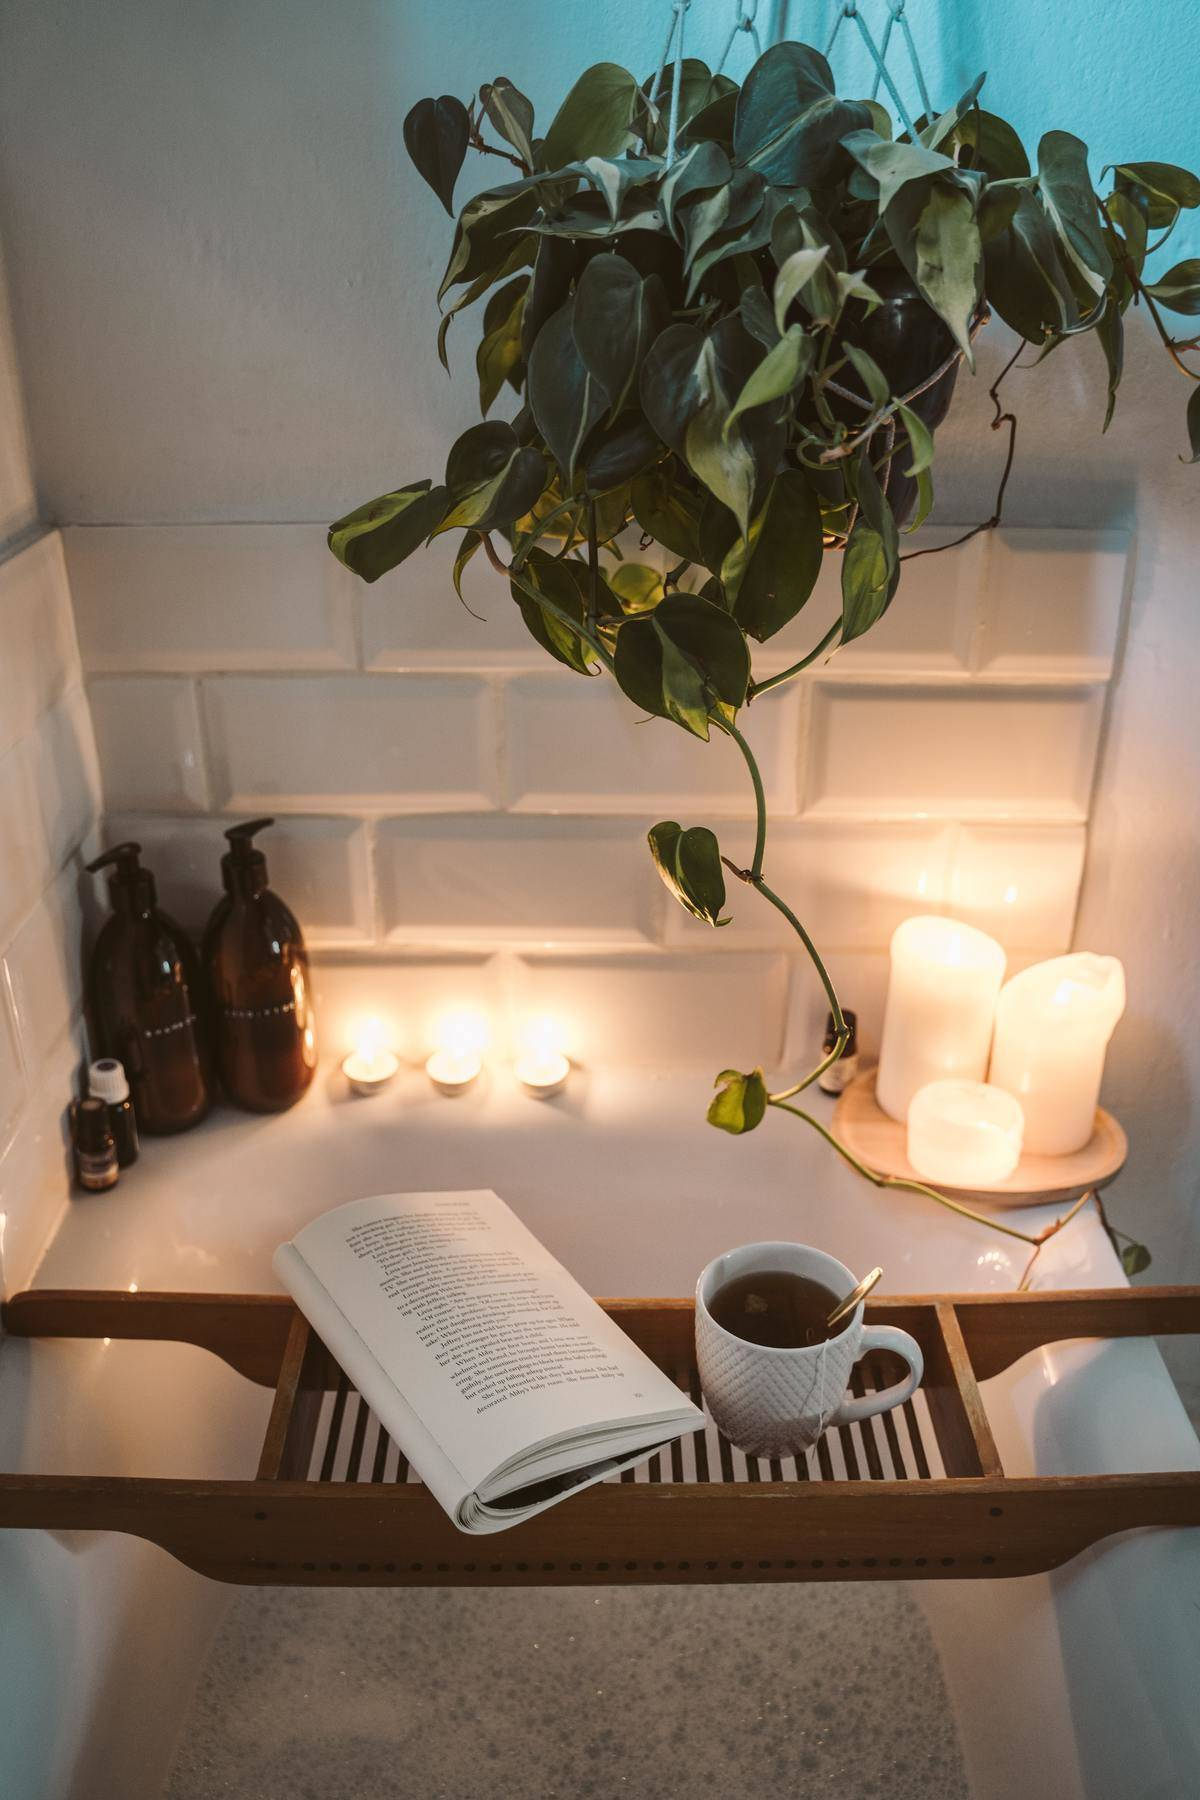 a really nice bath set up with candles and a book